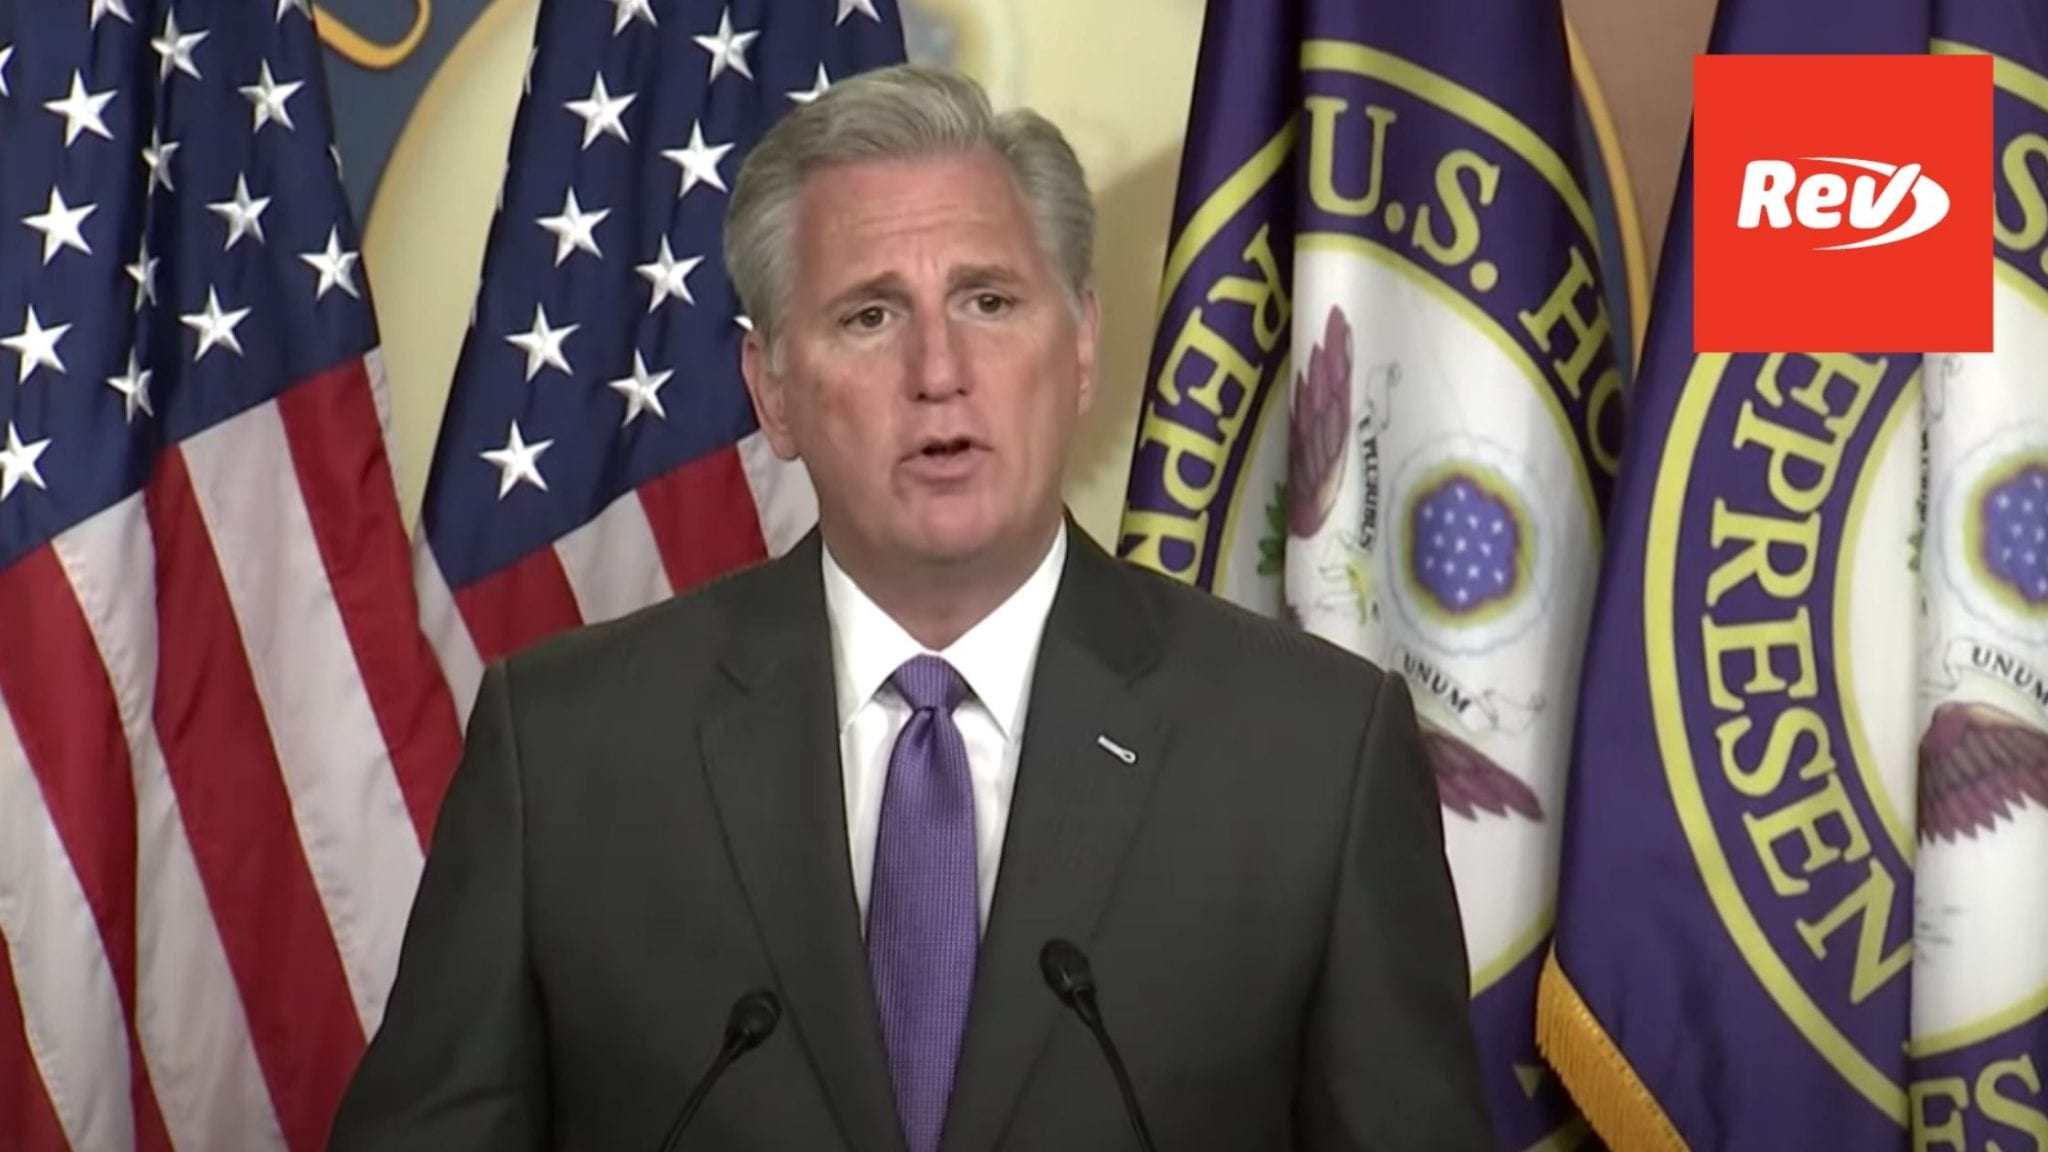 House Minority Leader Kevin McCarthy Press Conference Transcript November 19